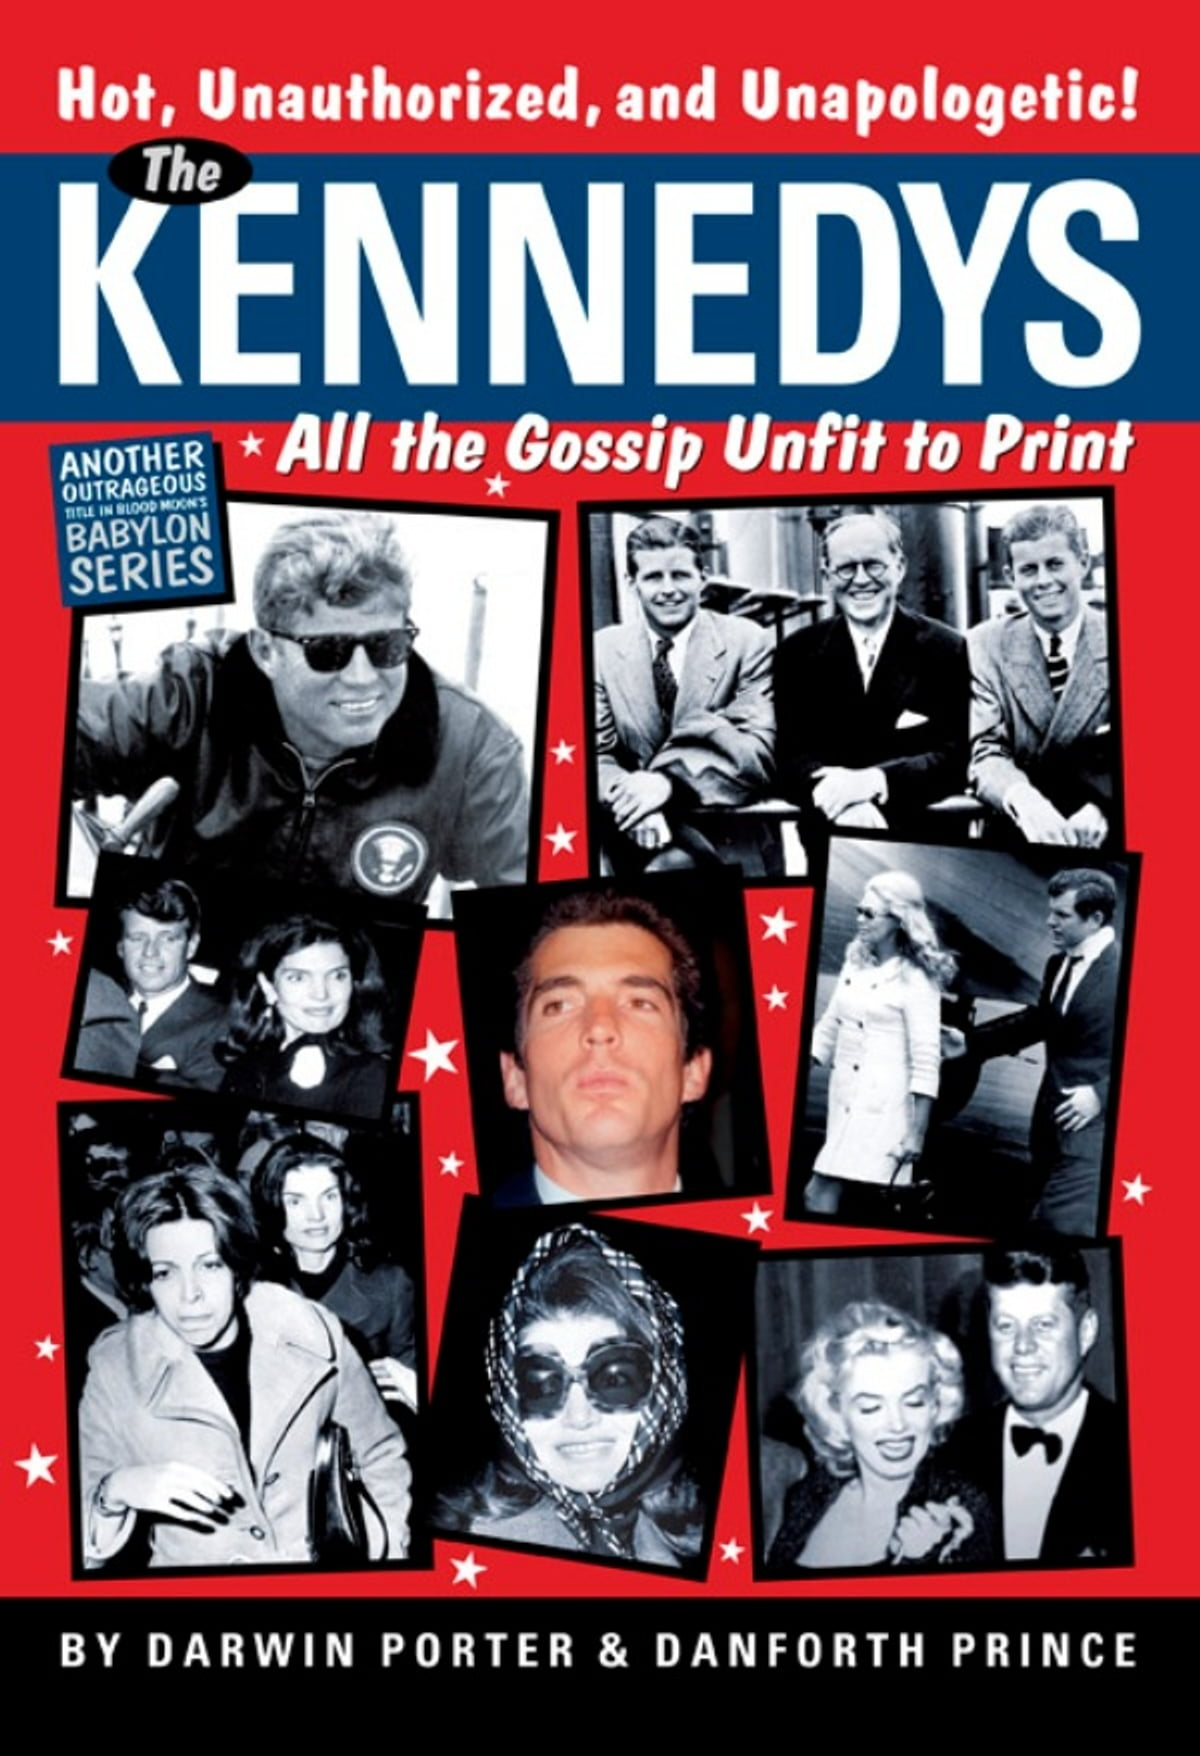 The Kennedys: All the Gossip Unfit for Print eBook by Darwin Porter -  9781936003181 | Rakuten Kobo